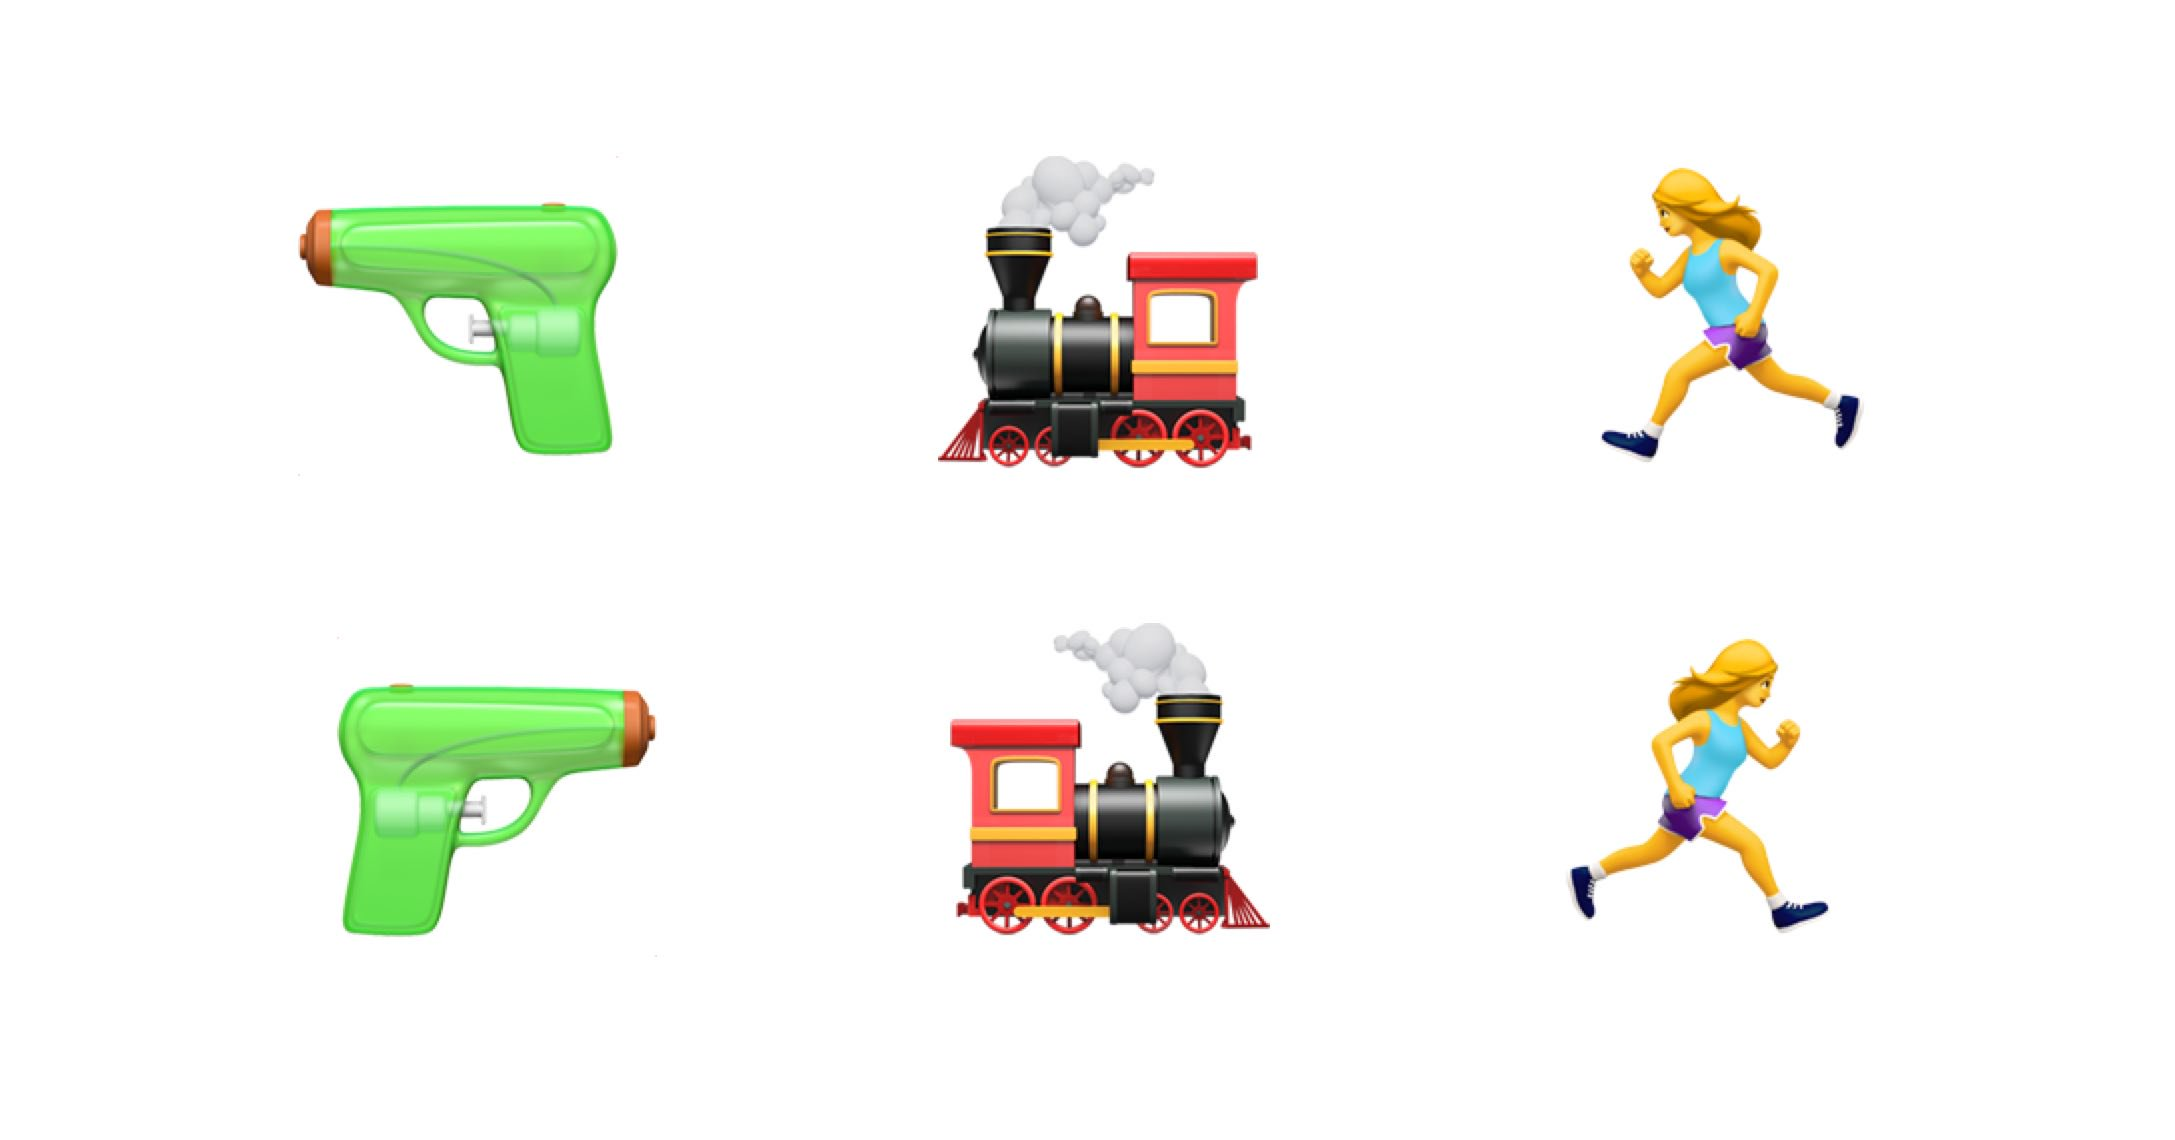 Emoji direction change